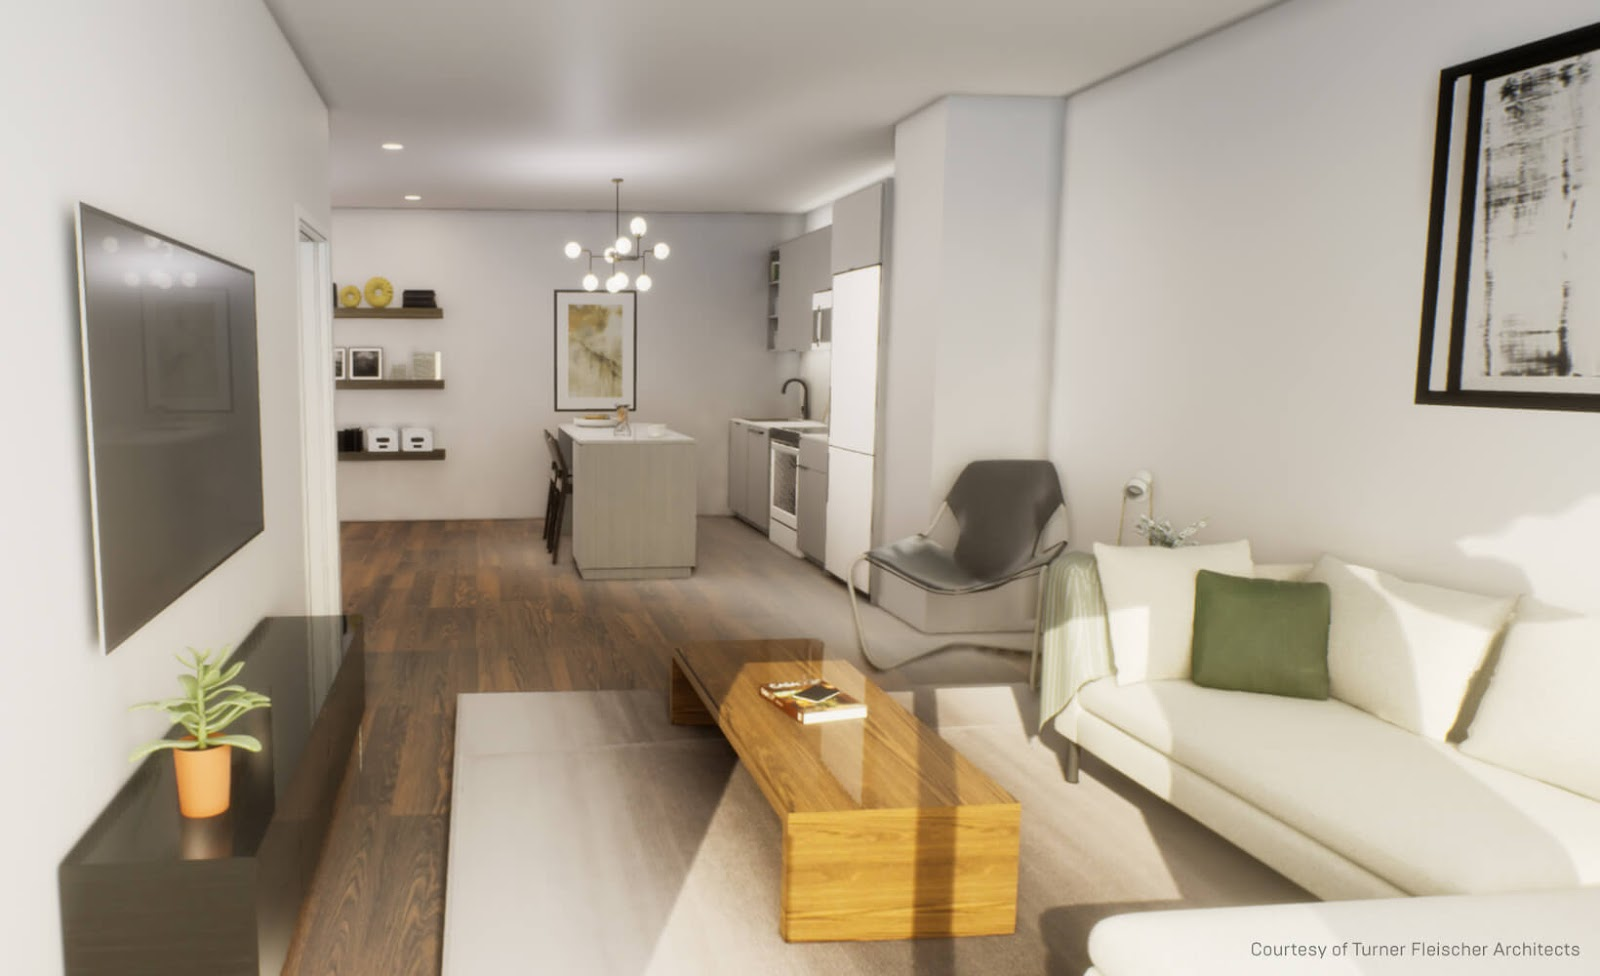 Residential interior modeled in SketchUp and rendered in Unreal Engine